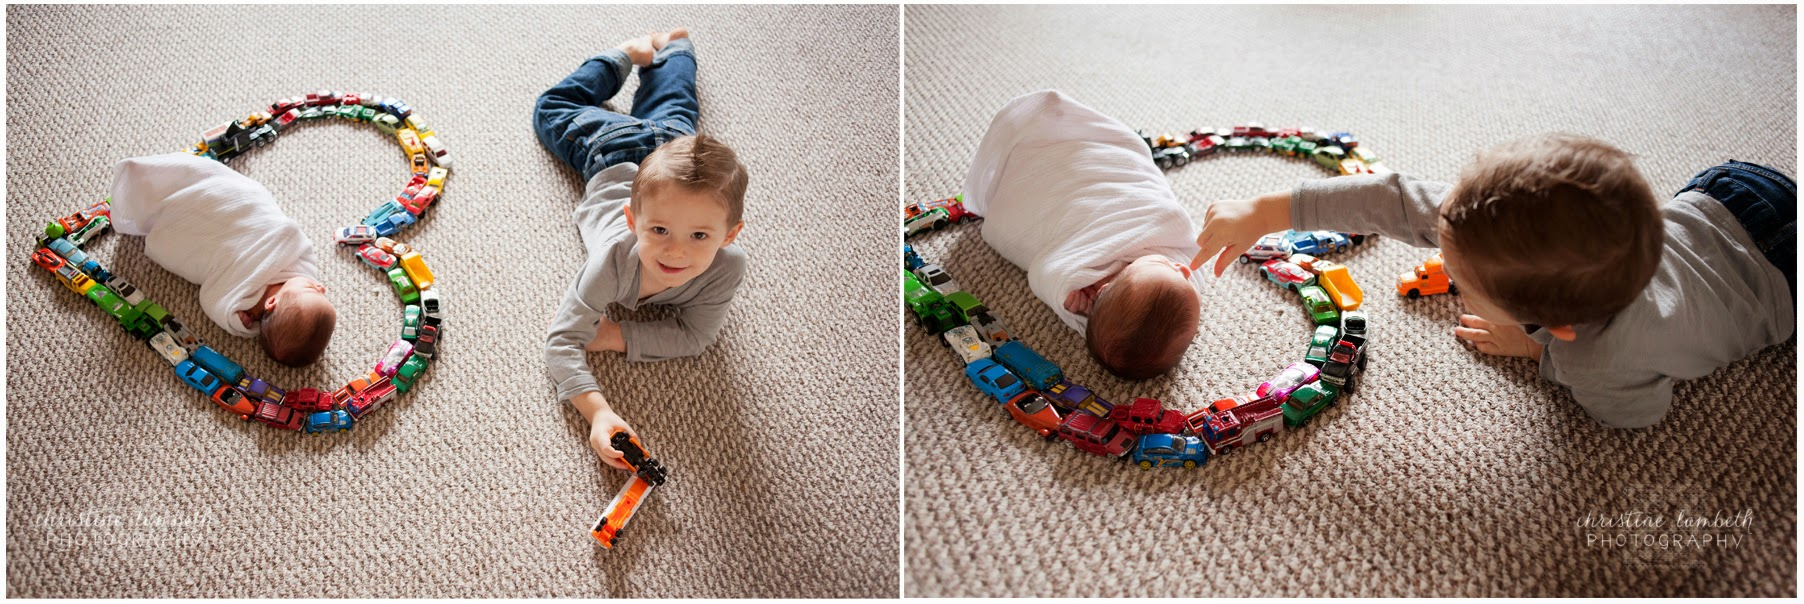 Newborn and big brother with toy cars